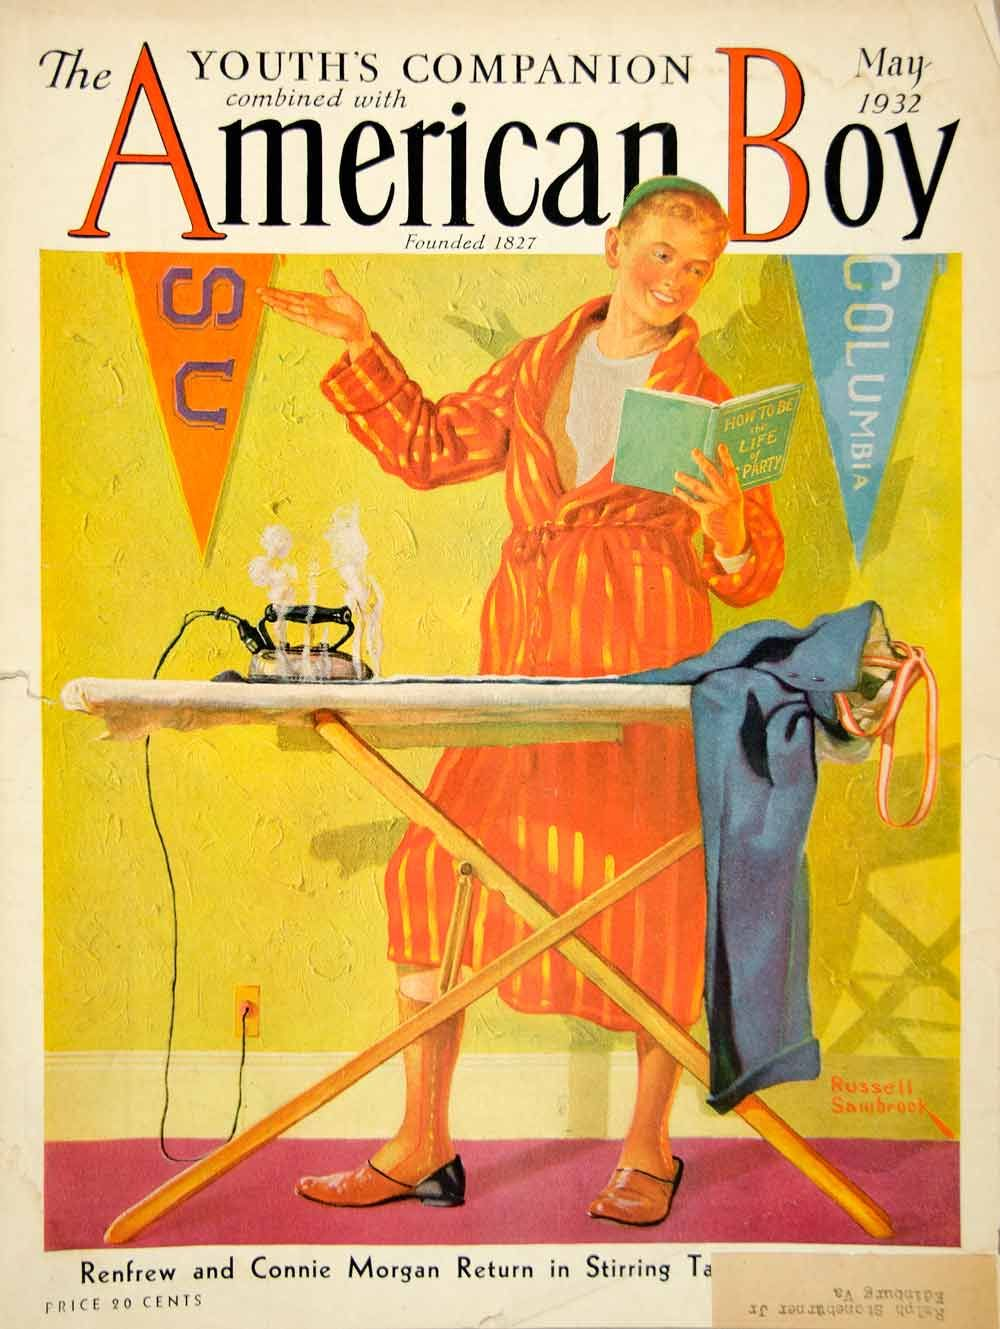 1932 Cover Russell Sambrook Art American Boy Columbia SU Pennant Ironing Board #vintage #americanboy #magazine #child